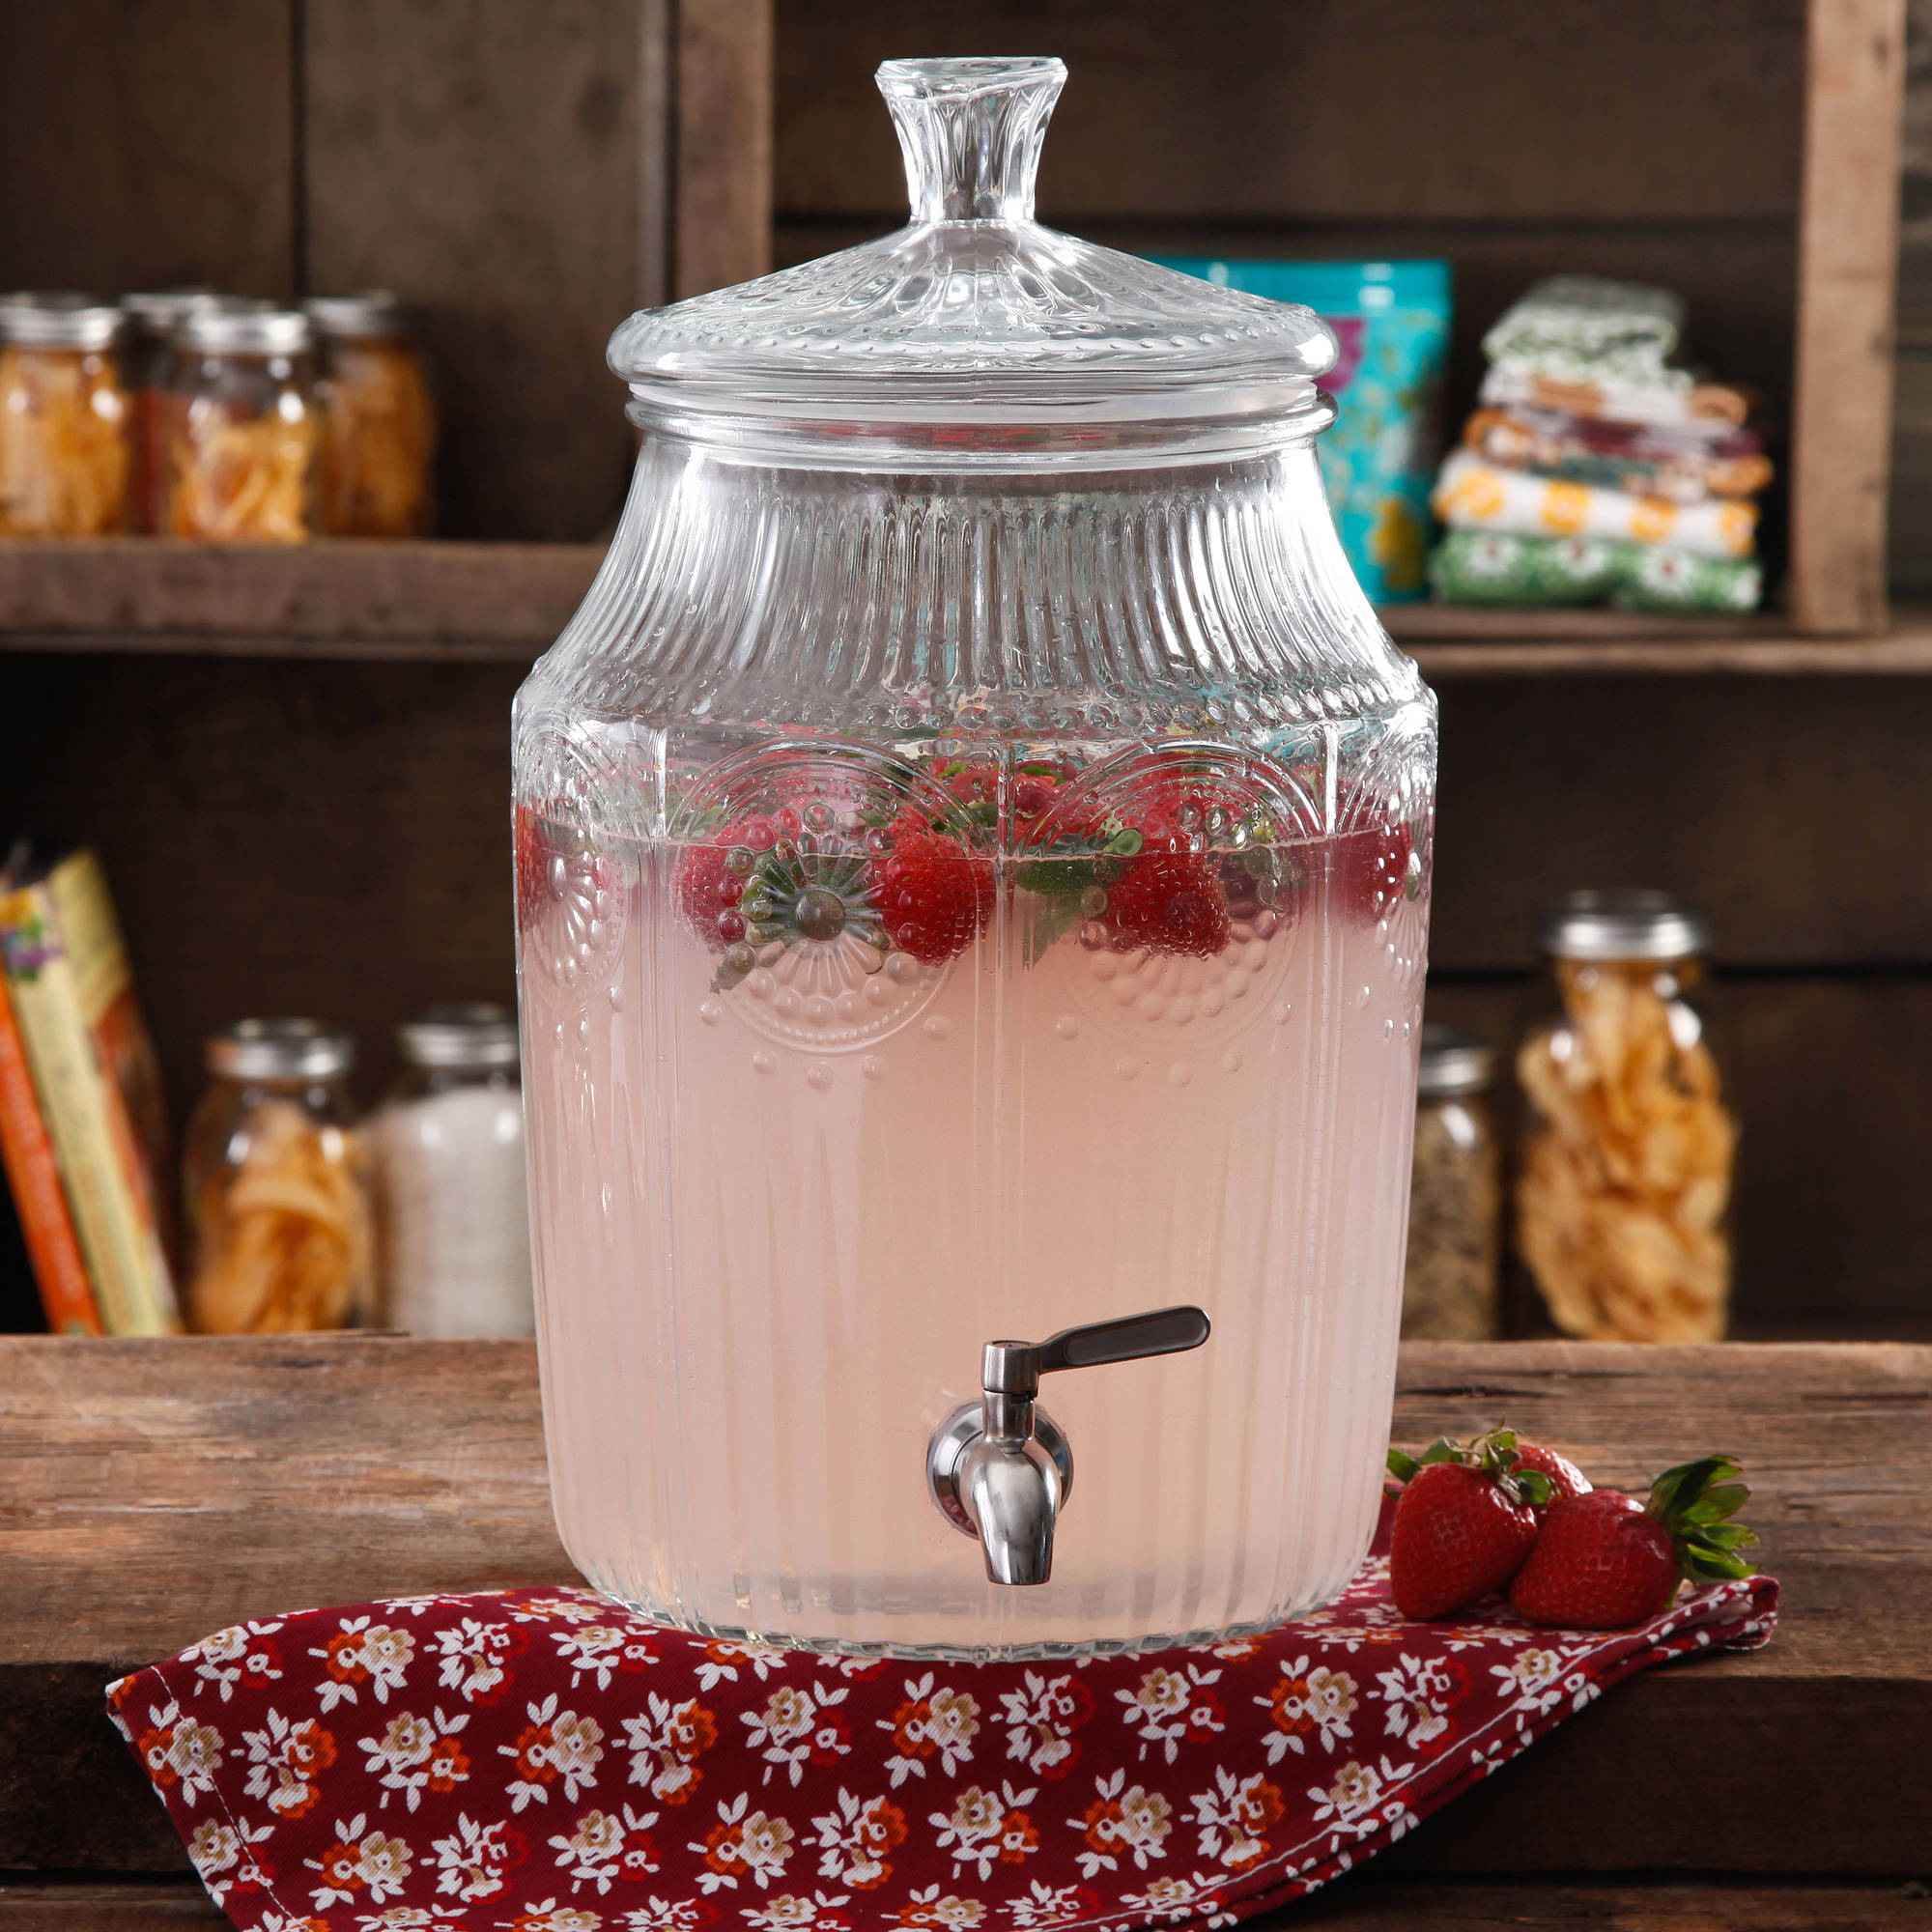 The Pioneer Woman Adeline 2.1-Gallon Glass Drink Dispenser